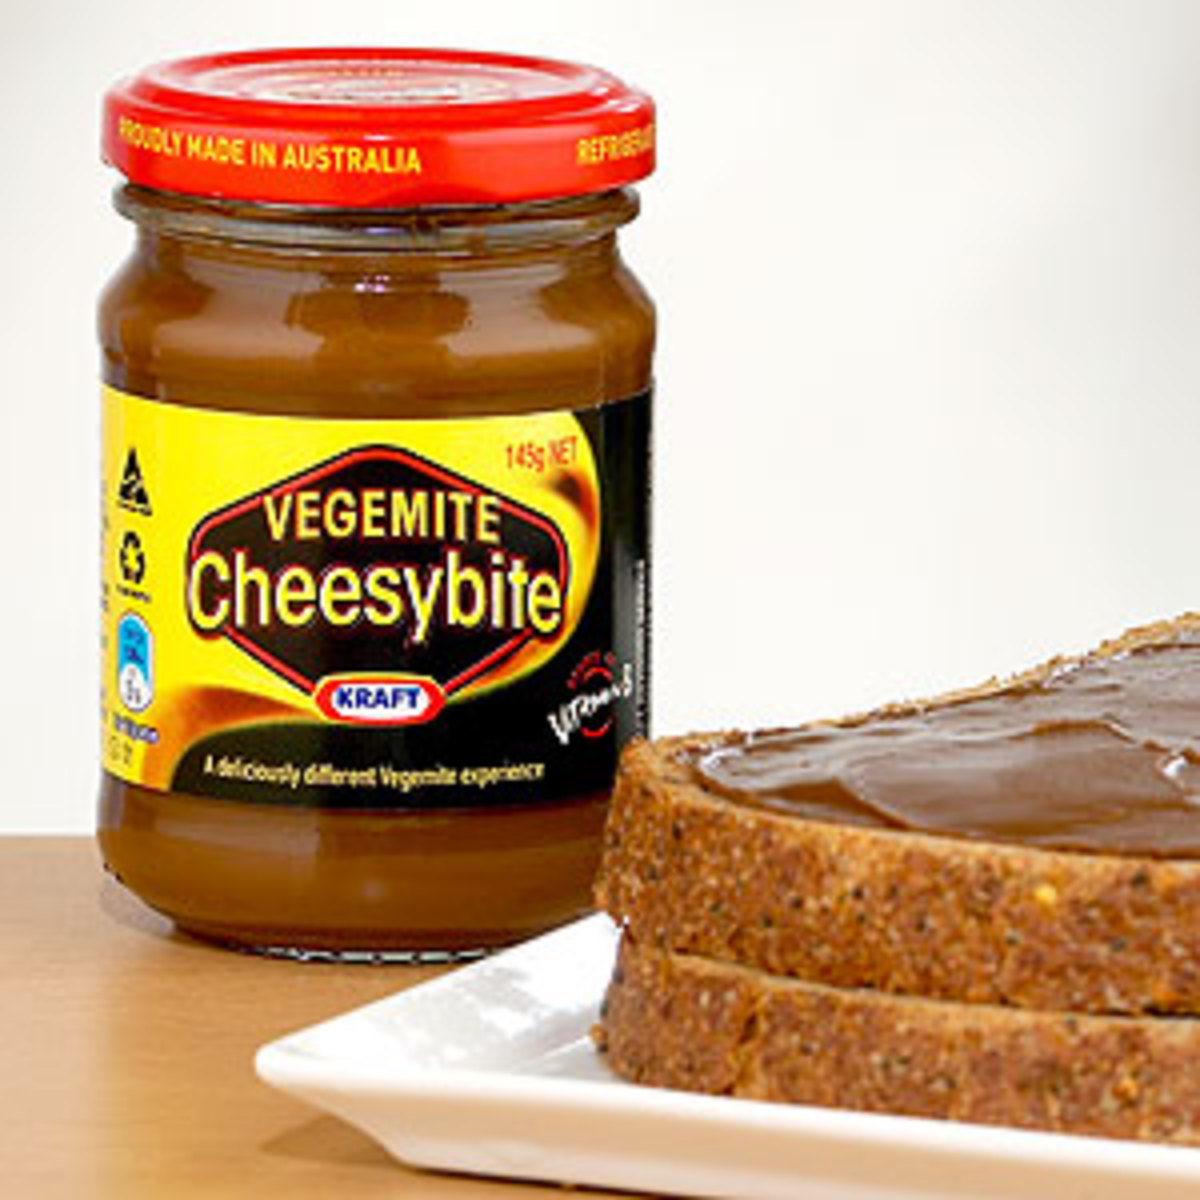 It spreads more easily and it is nowhere near as strong as original Vegemite so you can use much more on your bread.